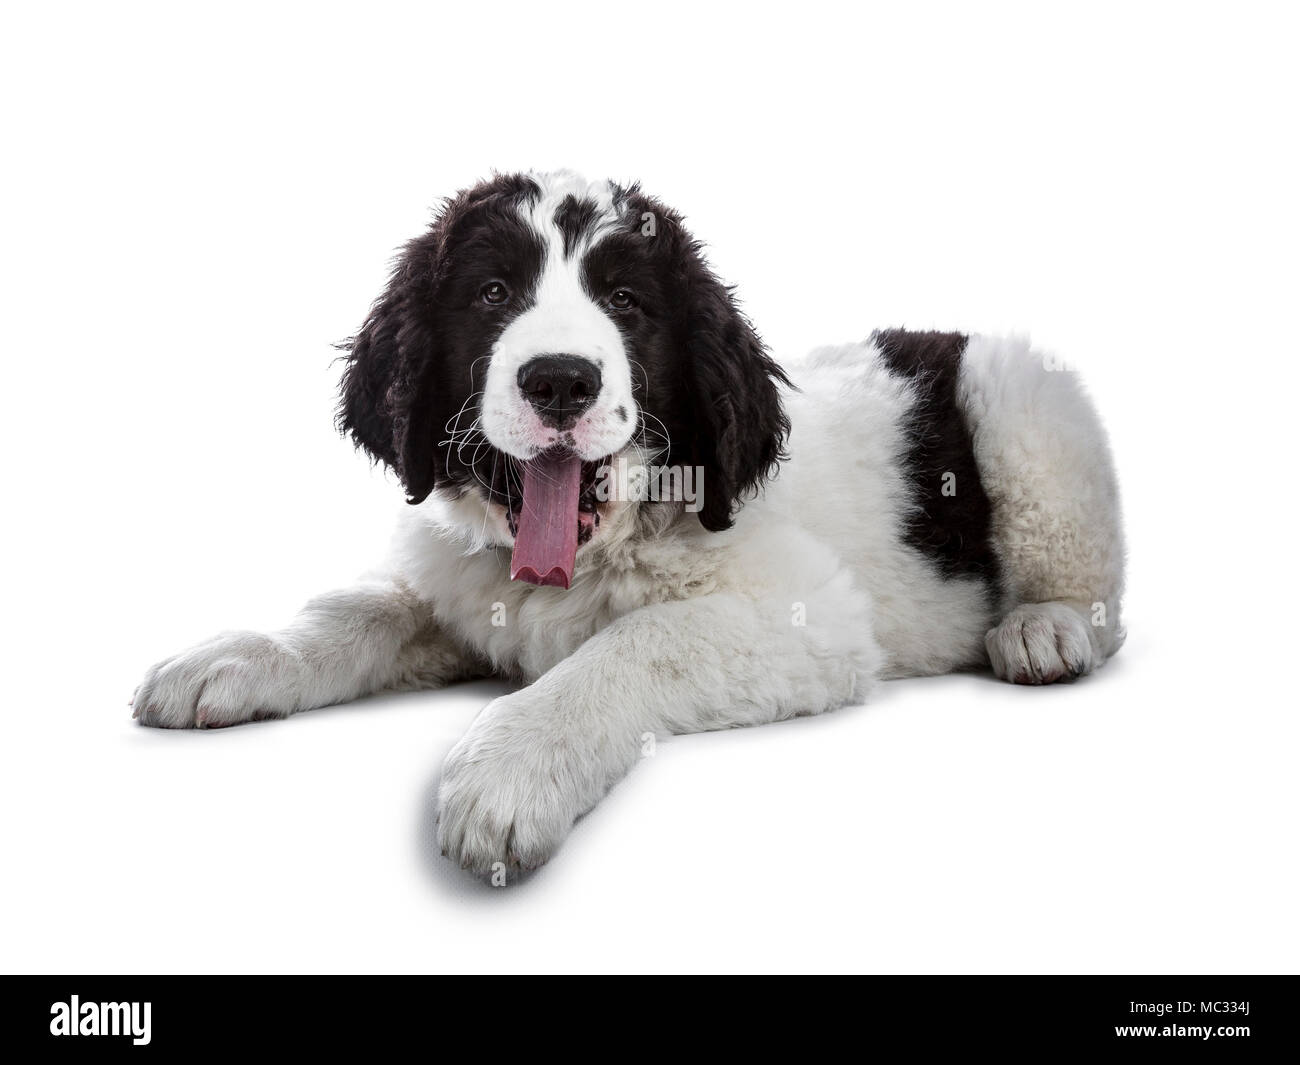 Adorable black and white Landseer puppy standing laying down and yawning isolated on white background while looking sleepy at camera - Stock Image